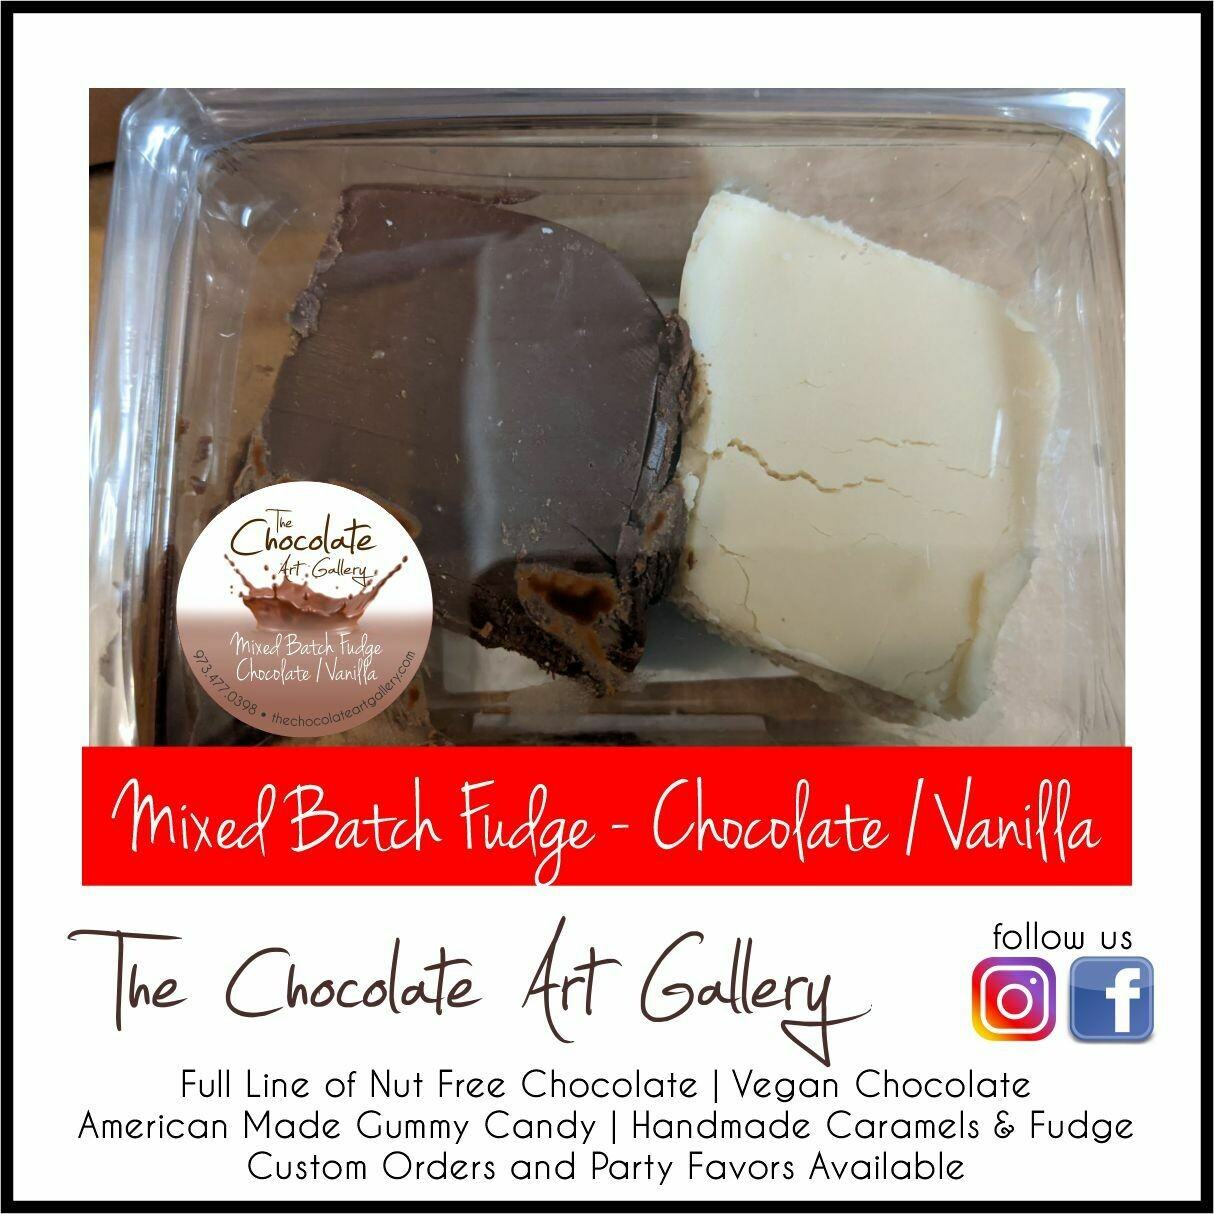 Mixed Batch Fudge - Chocolate and Vanilla (8 oz)